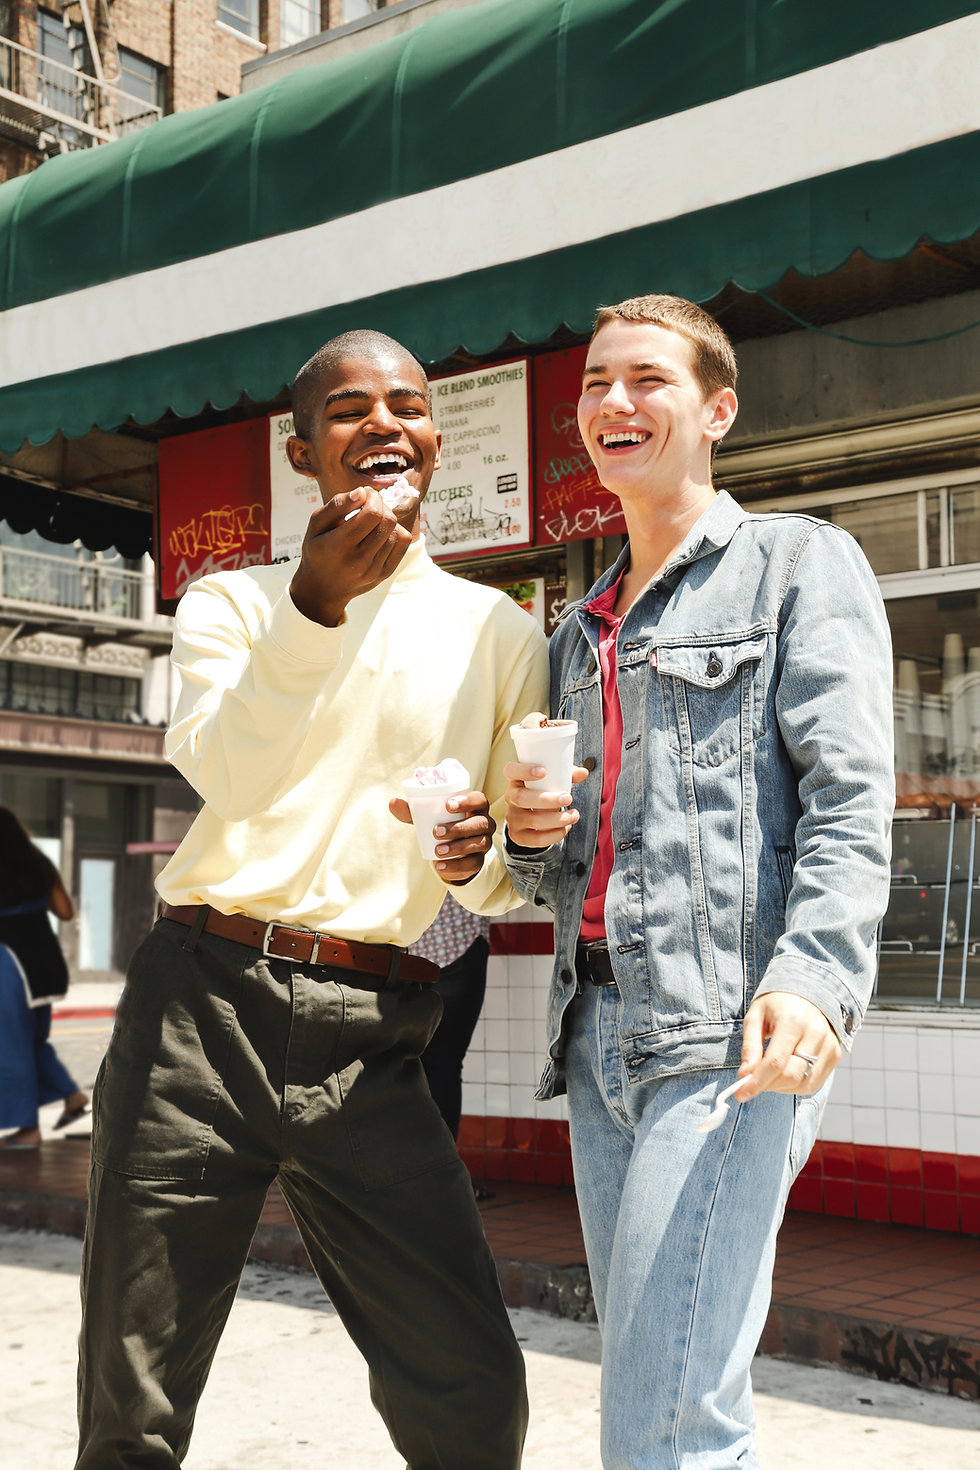 Two young boys standing in front of a deli eating ice cream